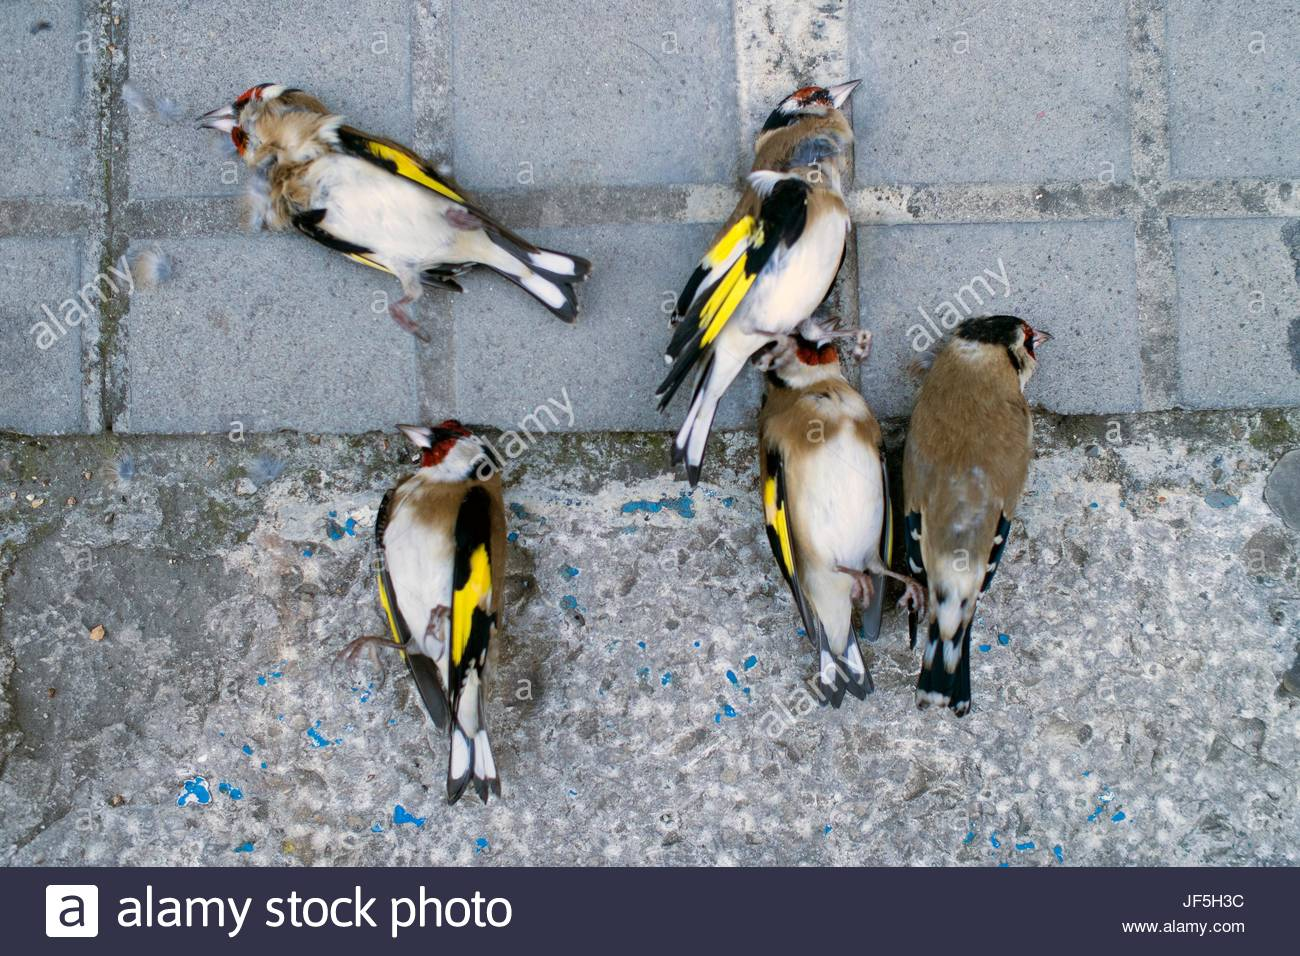 Dead birds on asphalt, killed by an unknown cause. - Stock Image